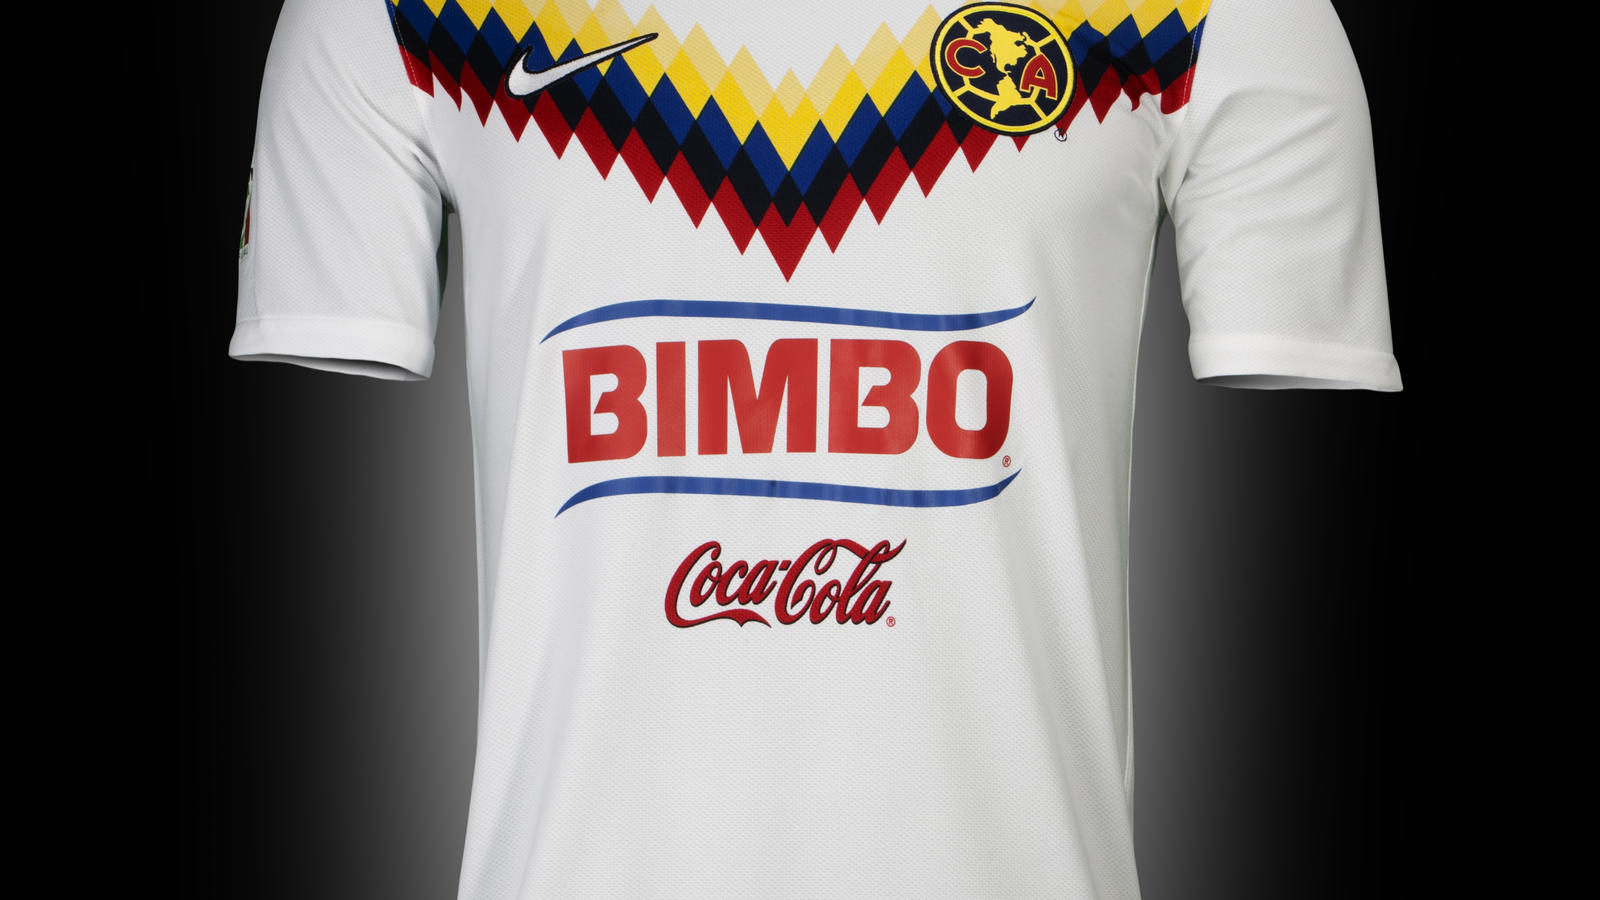 timeless design f63c4 d00f6 New Club América kits capture team's heritage and passion ...